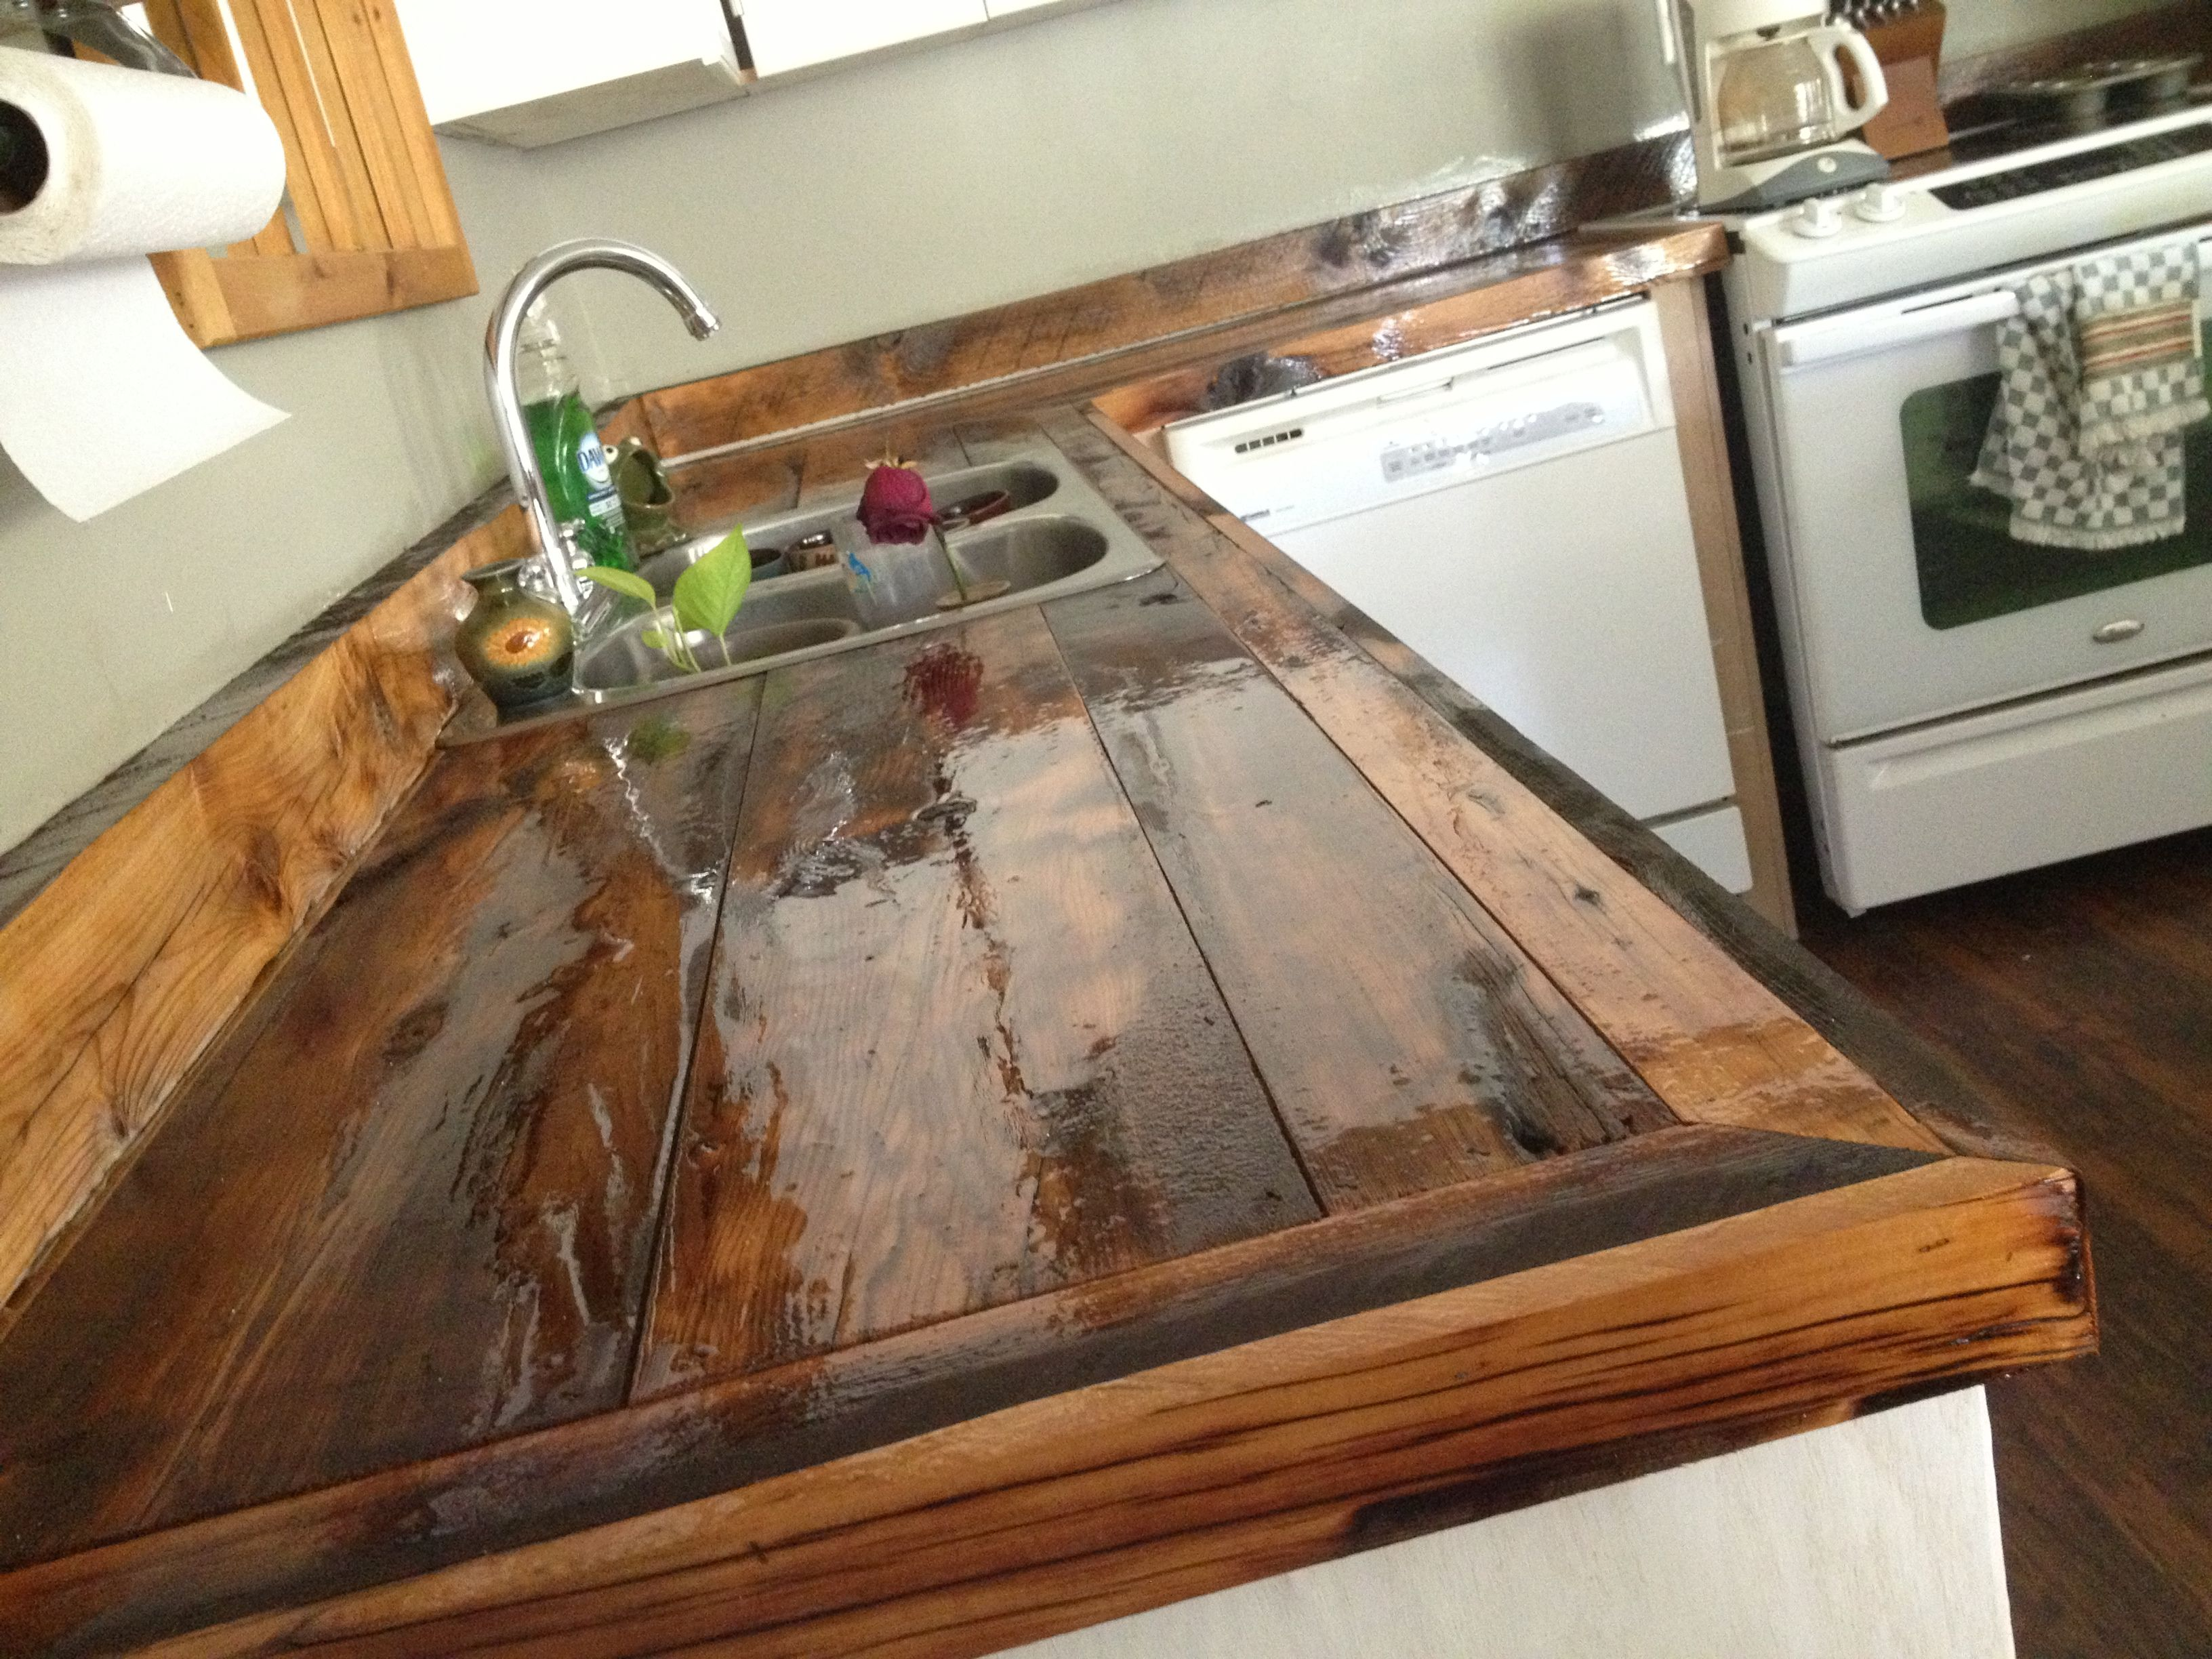 Chapter 37 started off her diy countertop project by